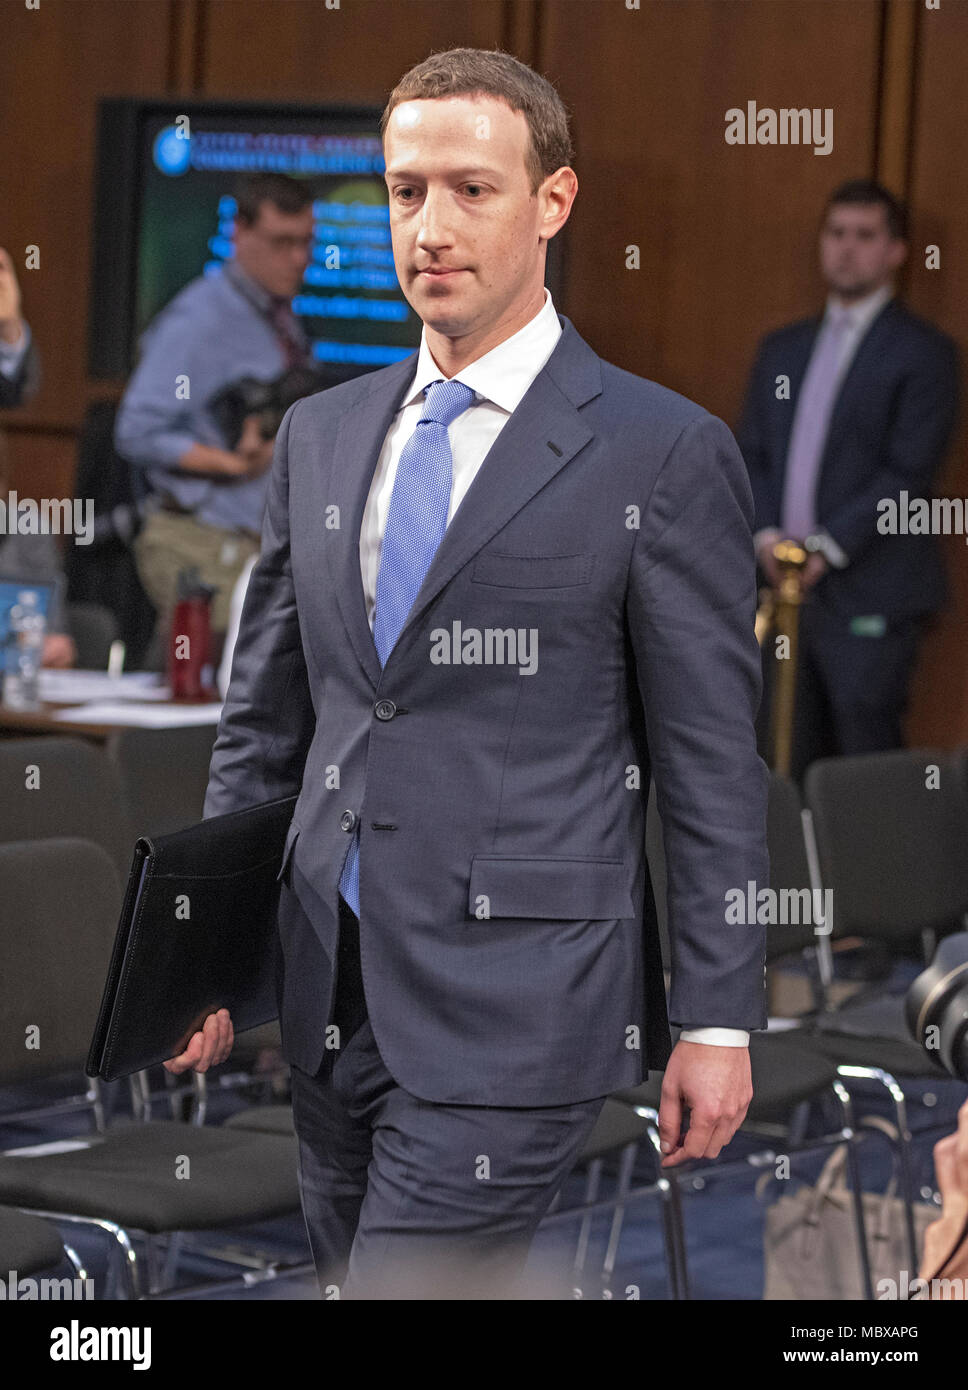 Mark Zuckerberg Co Founder And Ceo Of Facebook Returns From A Break To Resume Testimony Before A Joint Meeting Of The United States Senate Committee On The Judiciary And The Us Senate Committee